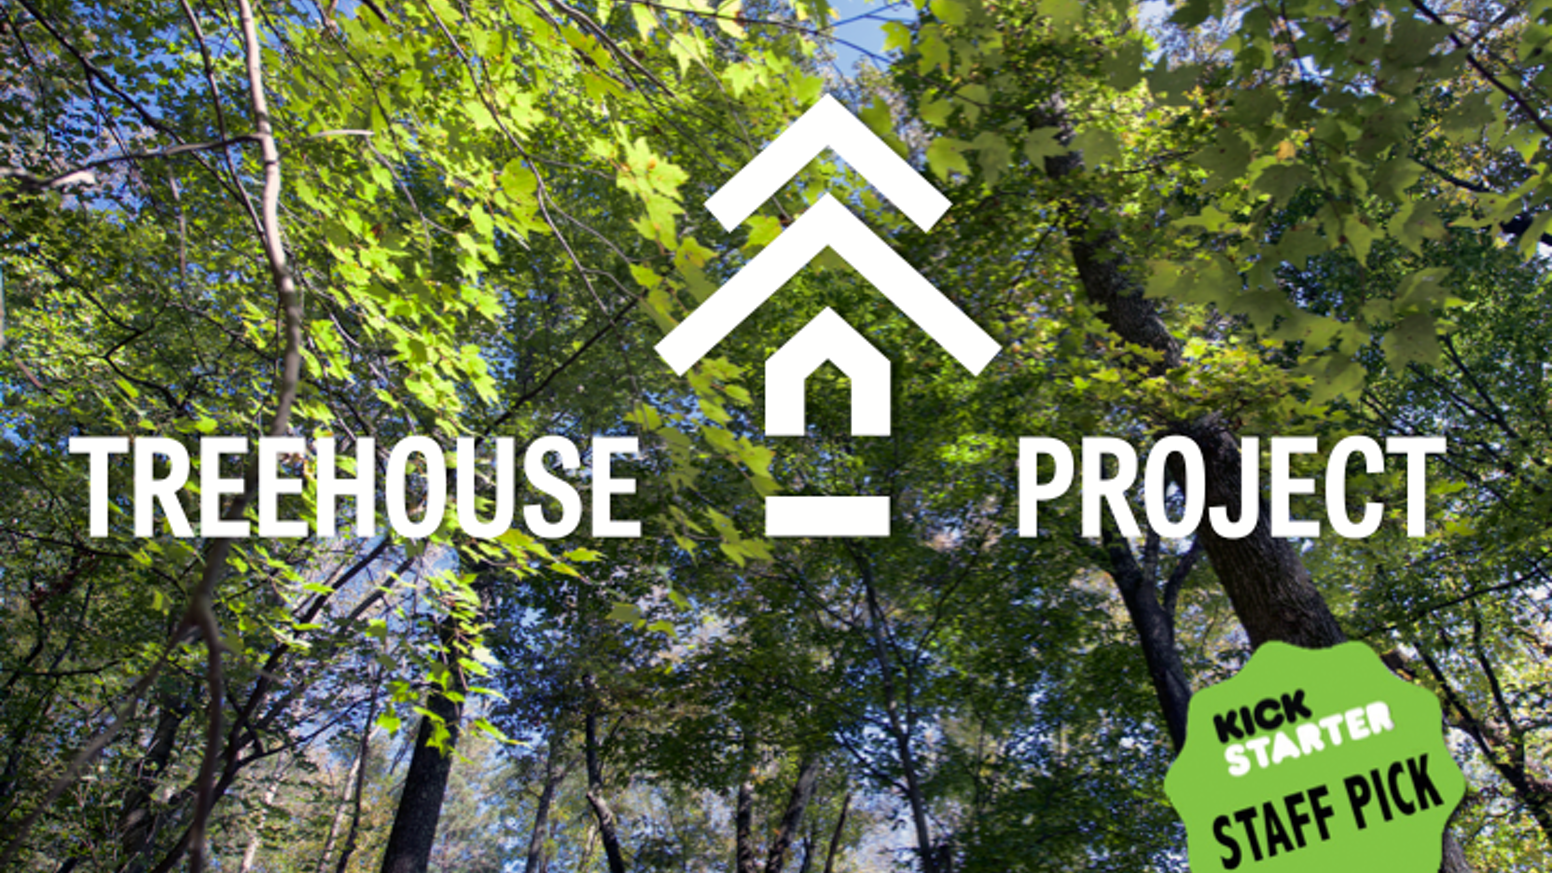 The Treehouse Project is about creating comfortable treetop hideaways that promote a model of sustainability for the future.